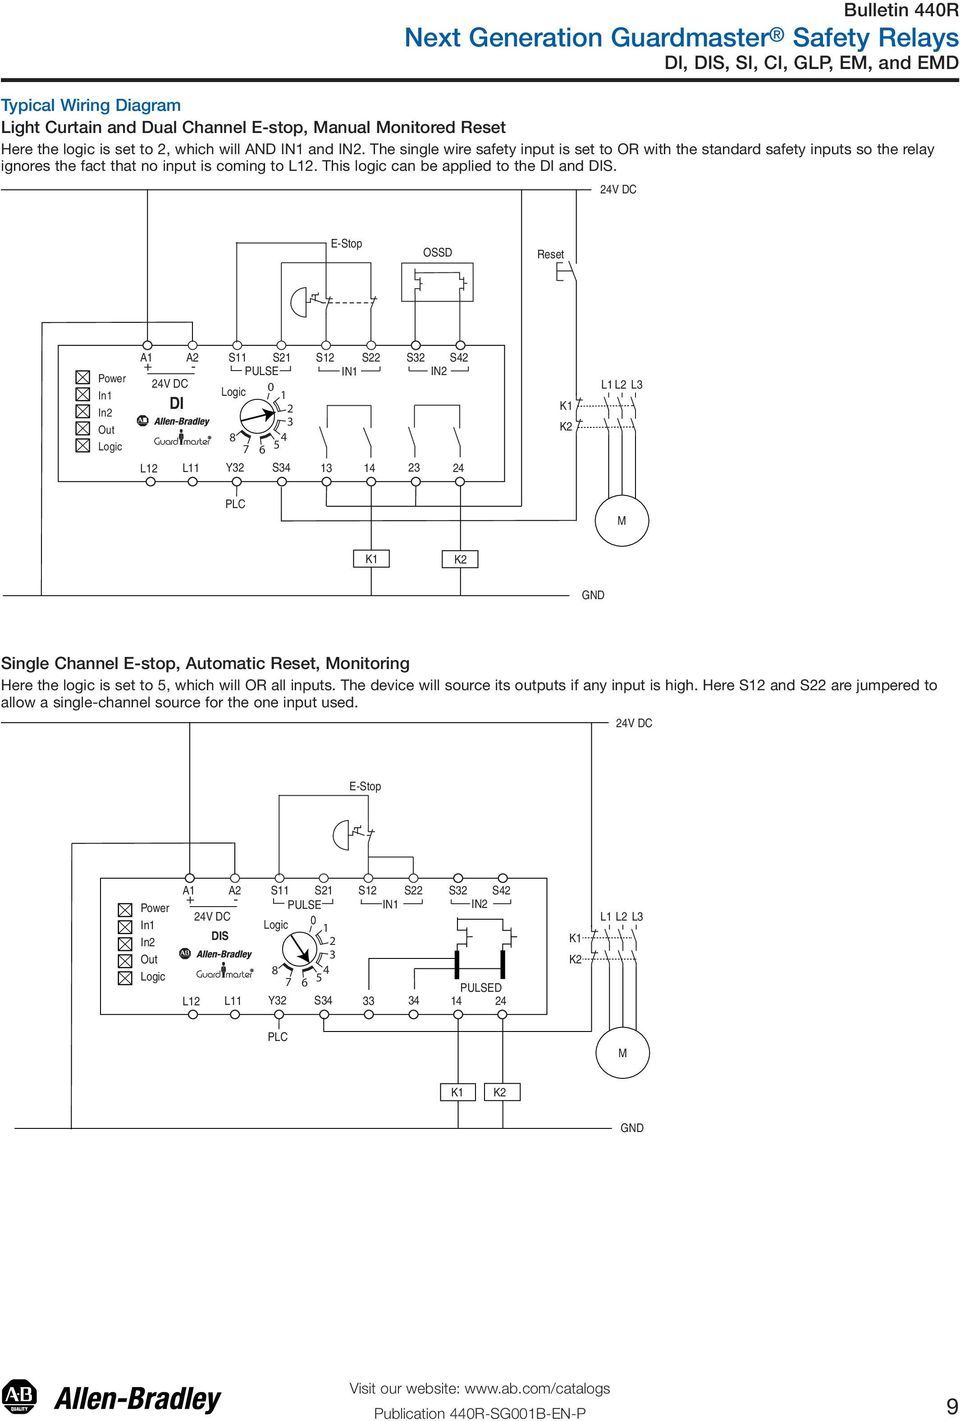 60 Lovely Allen Bradley Guardmaster Safety Relay Wiring Diagram In 2020 Relay Wire Electromagnet